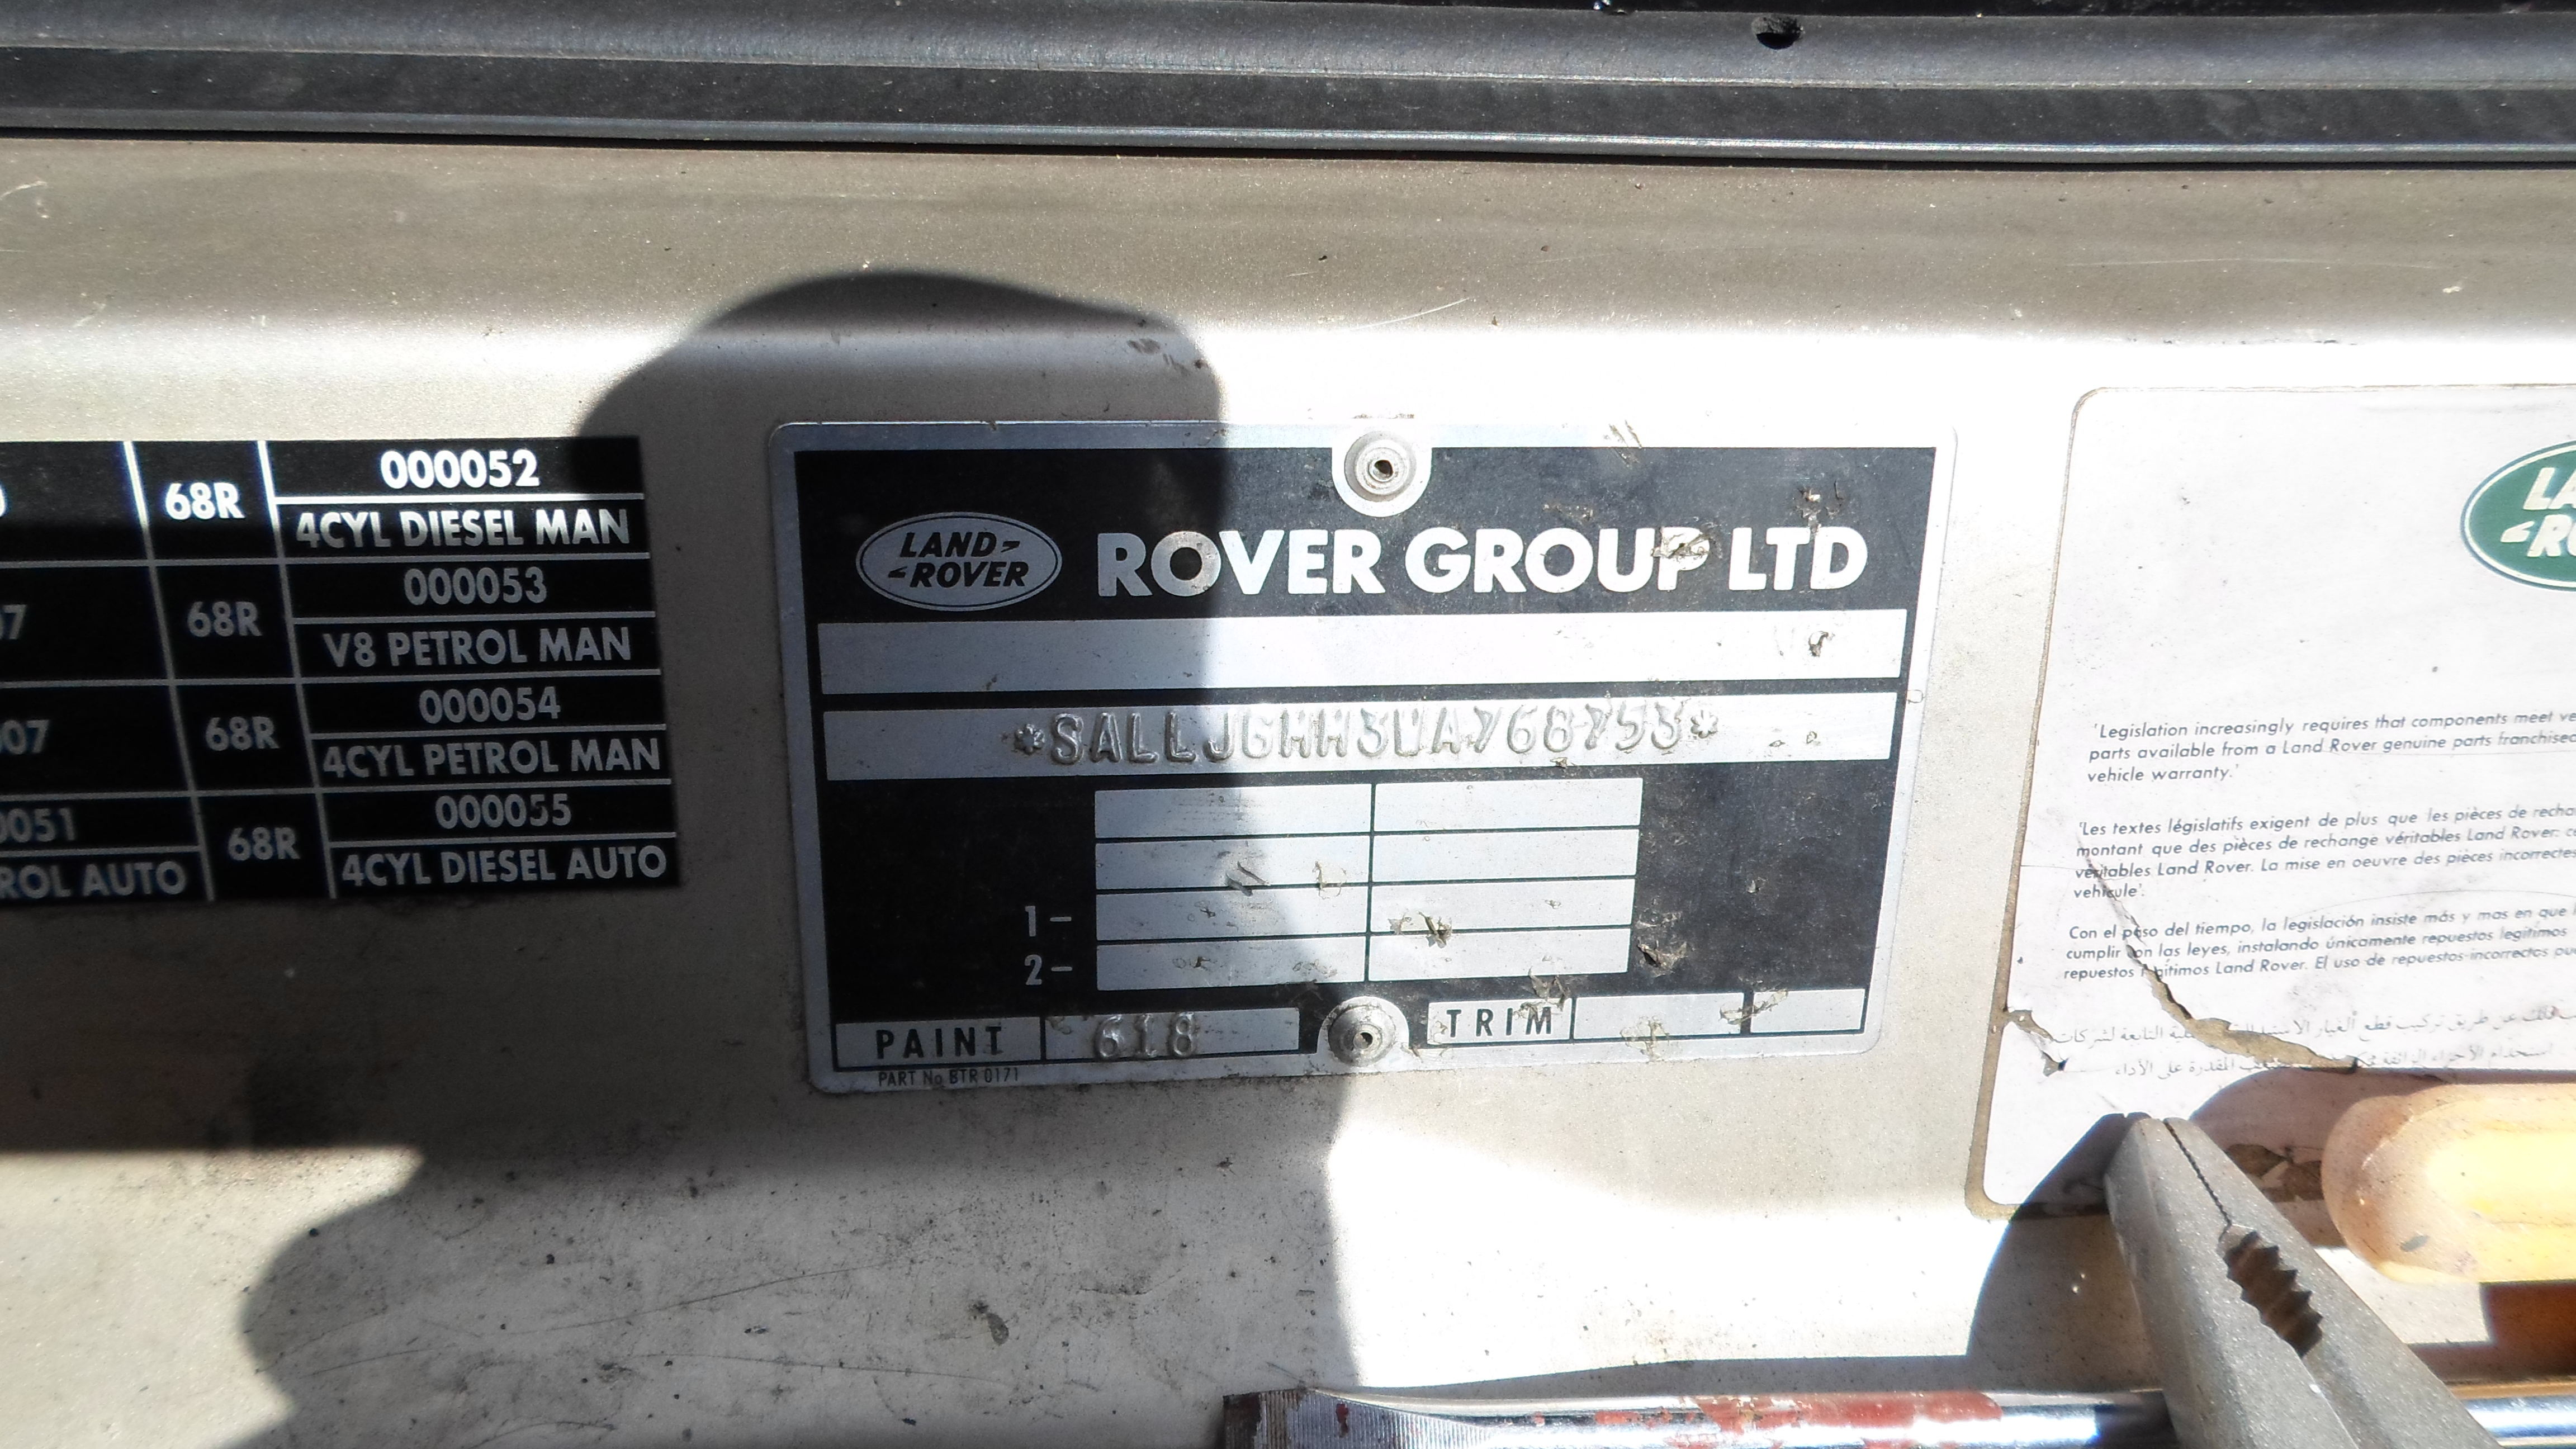 Landrover Discovery 1998 3269 Perth 4wd Land Rover Parts Sam 3175